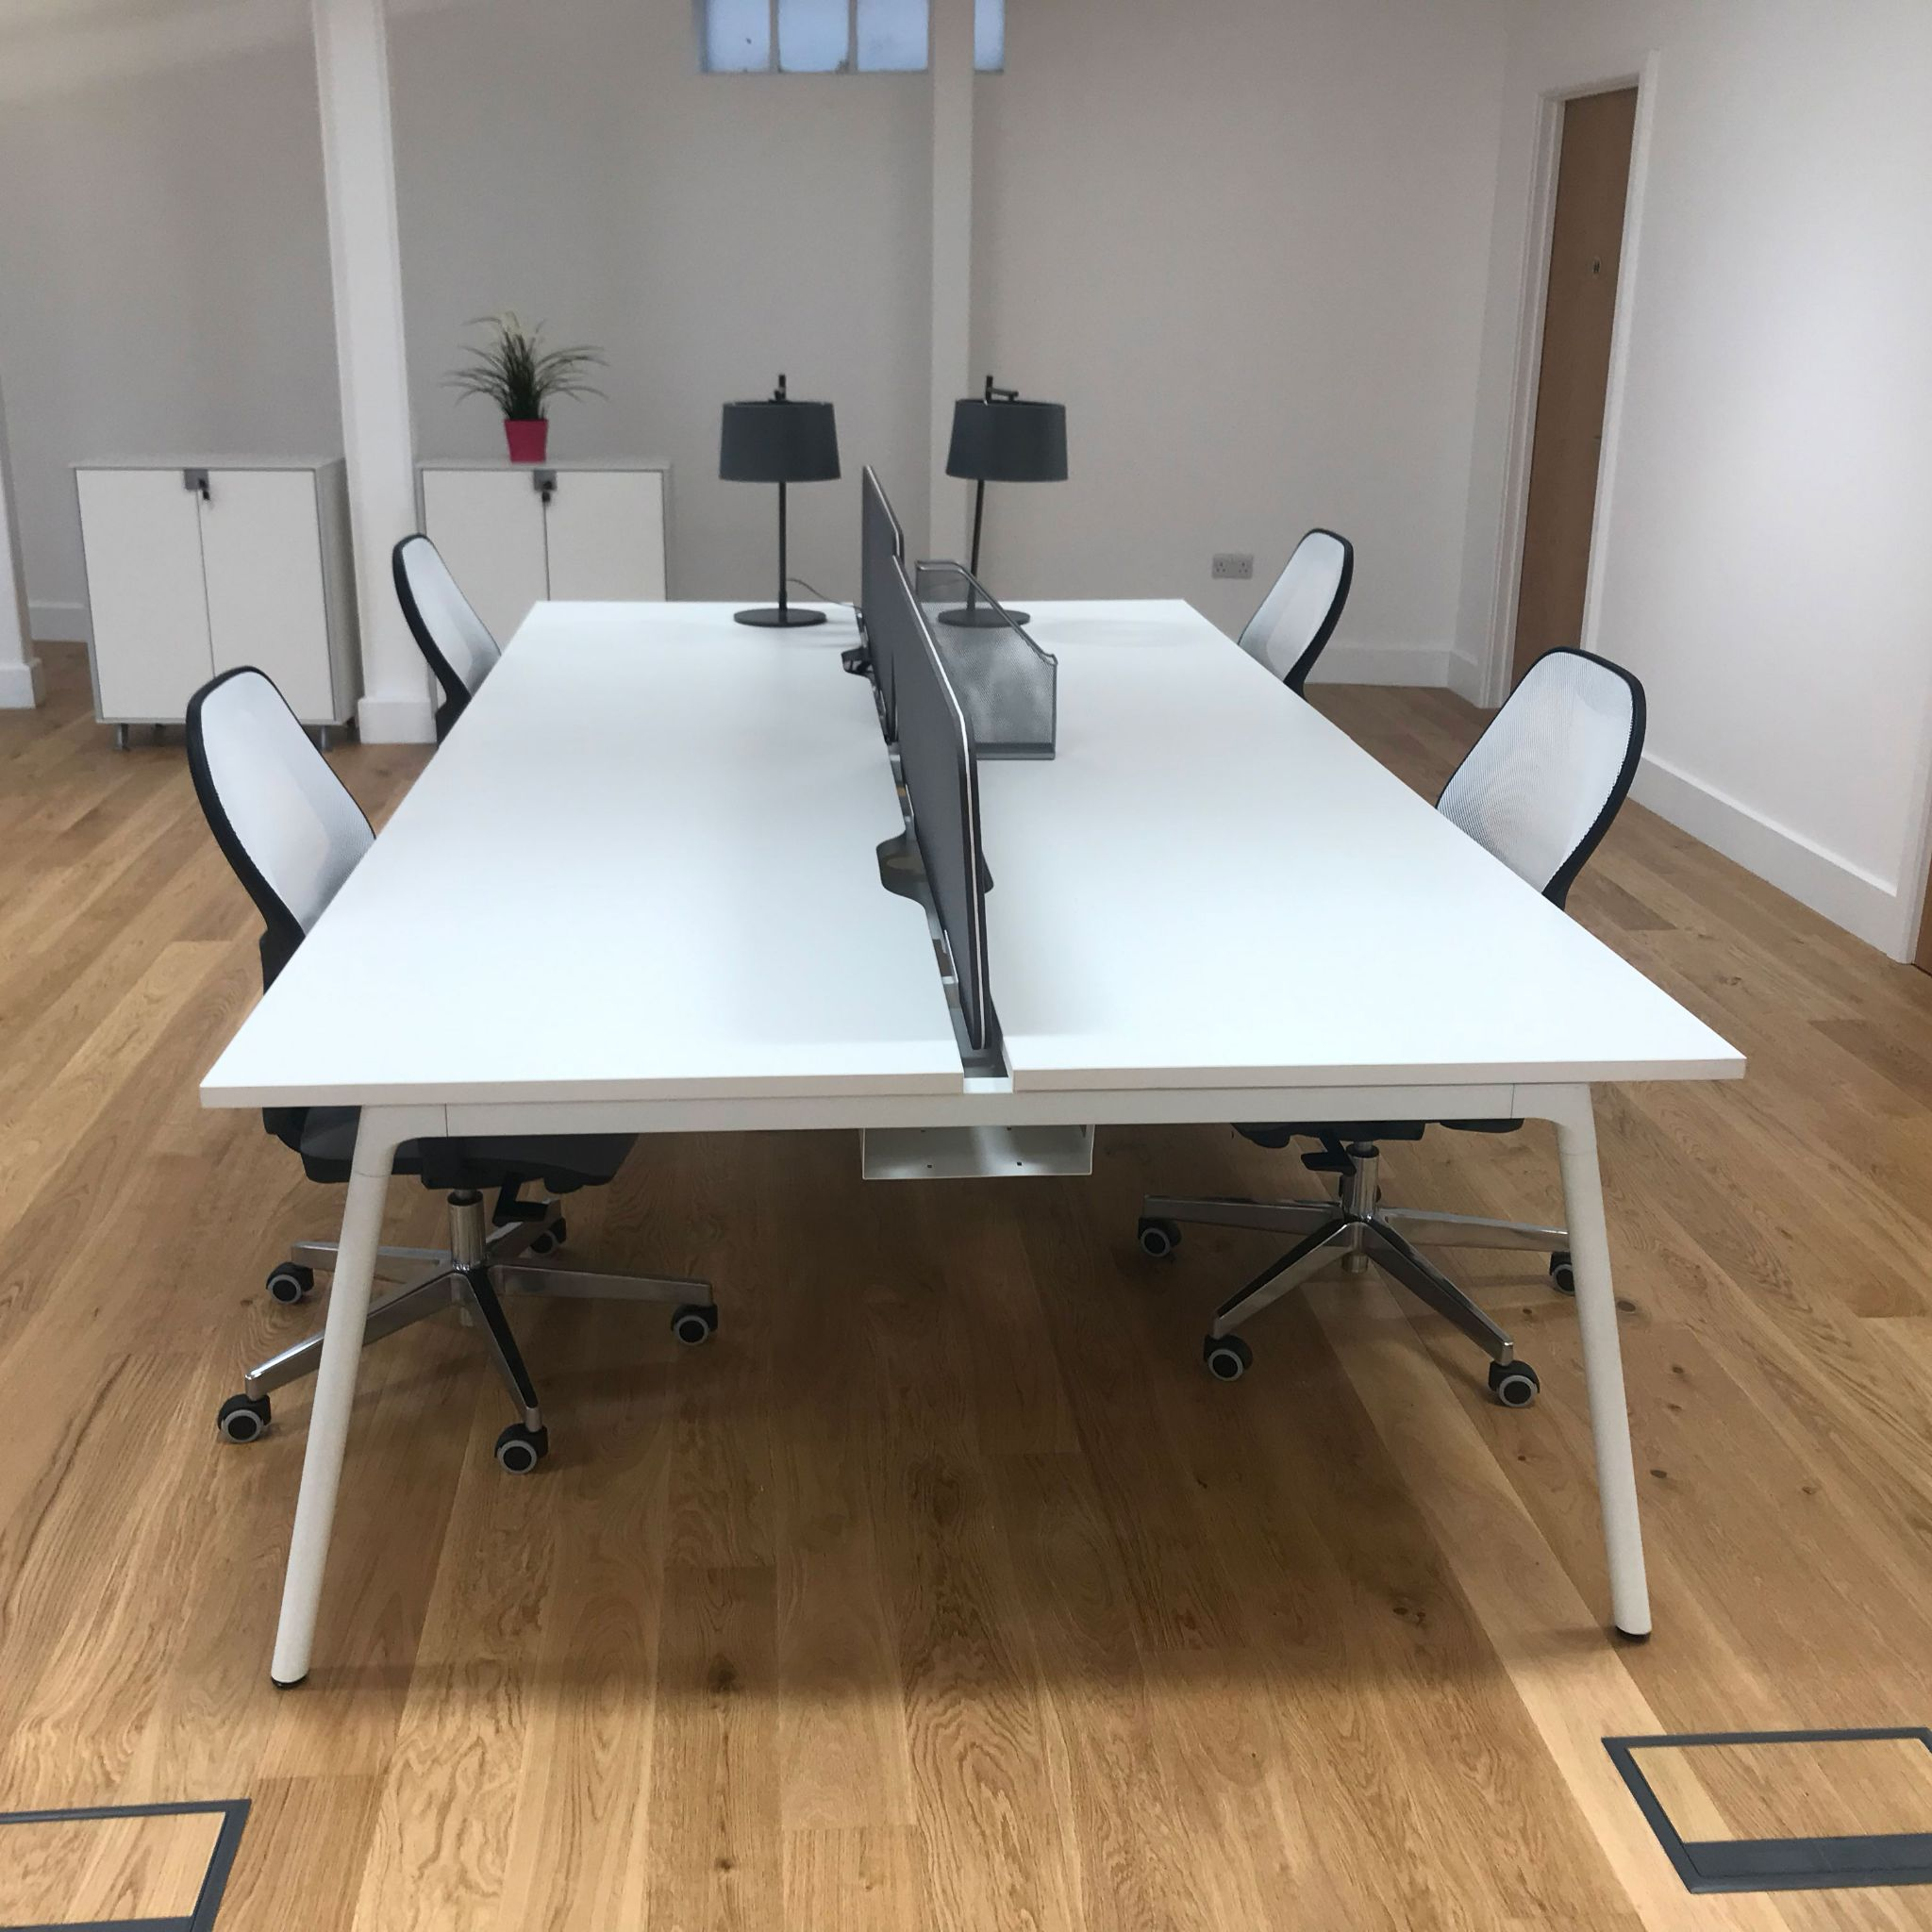 Stupendous White Bench Desk With Screens Cjindustries Chair Design For Home Cjindustriesco